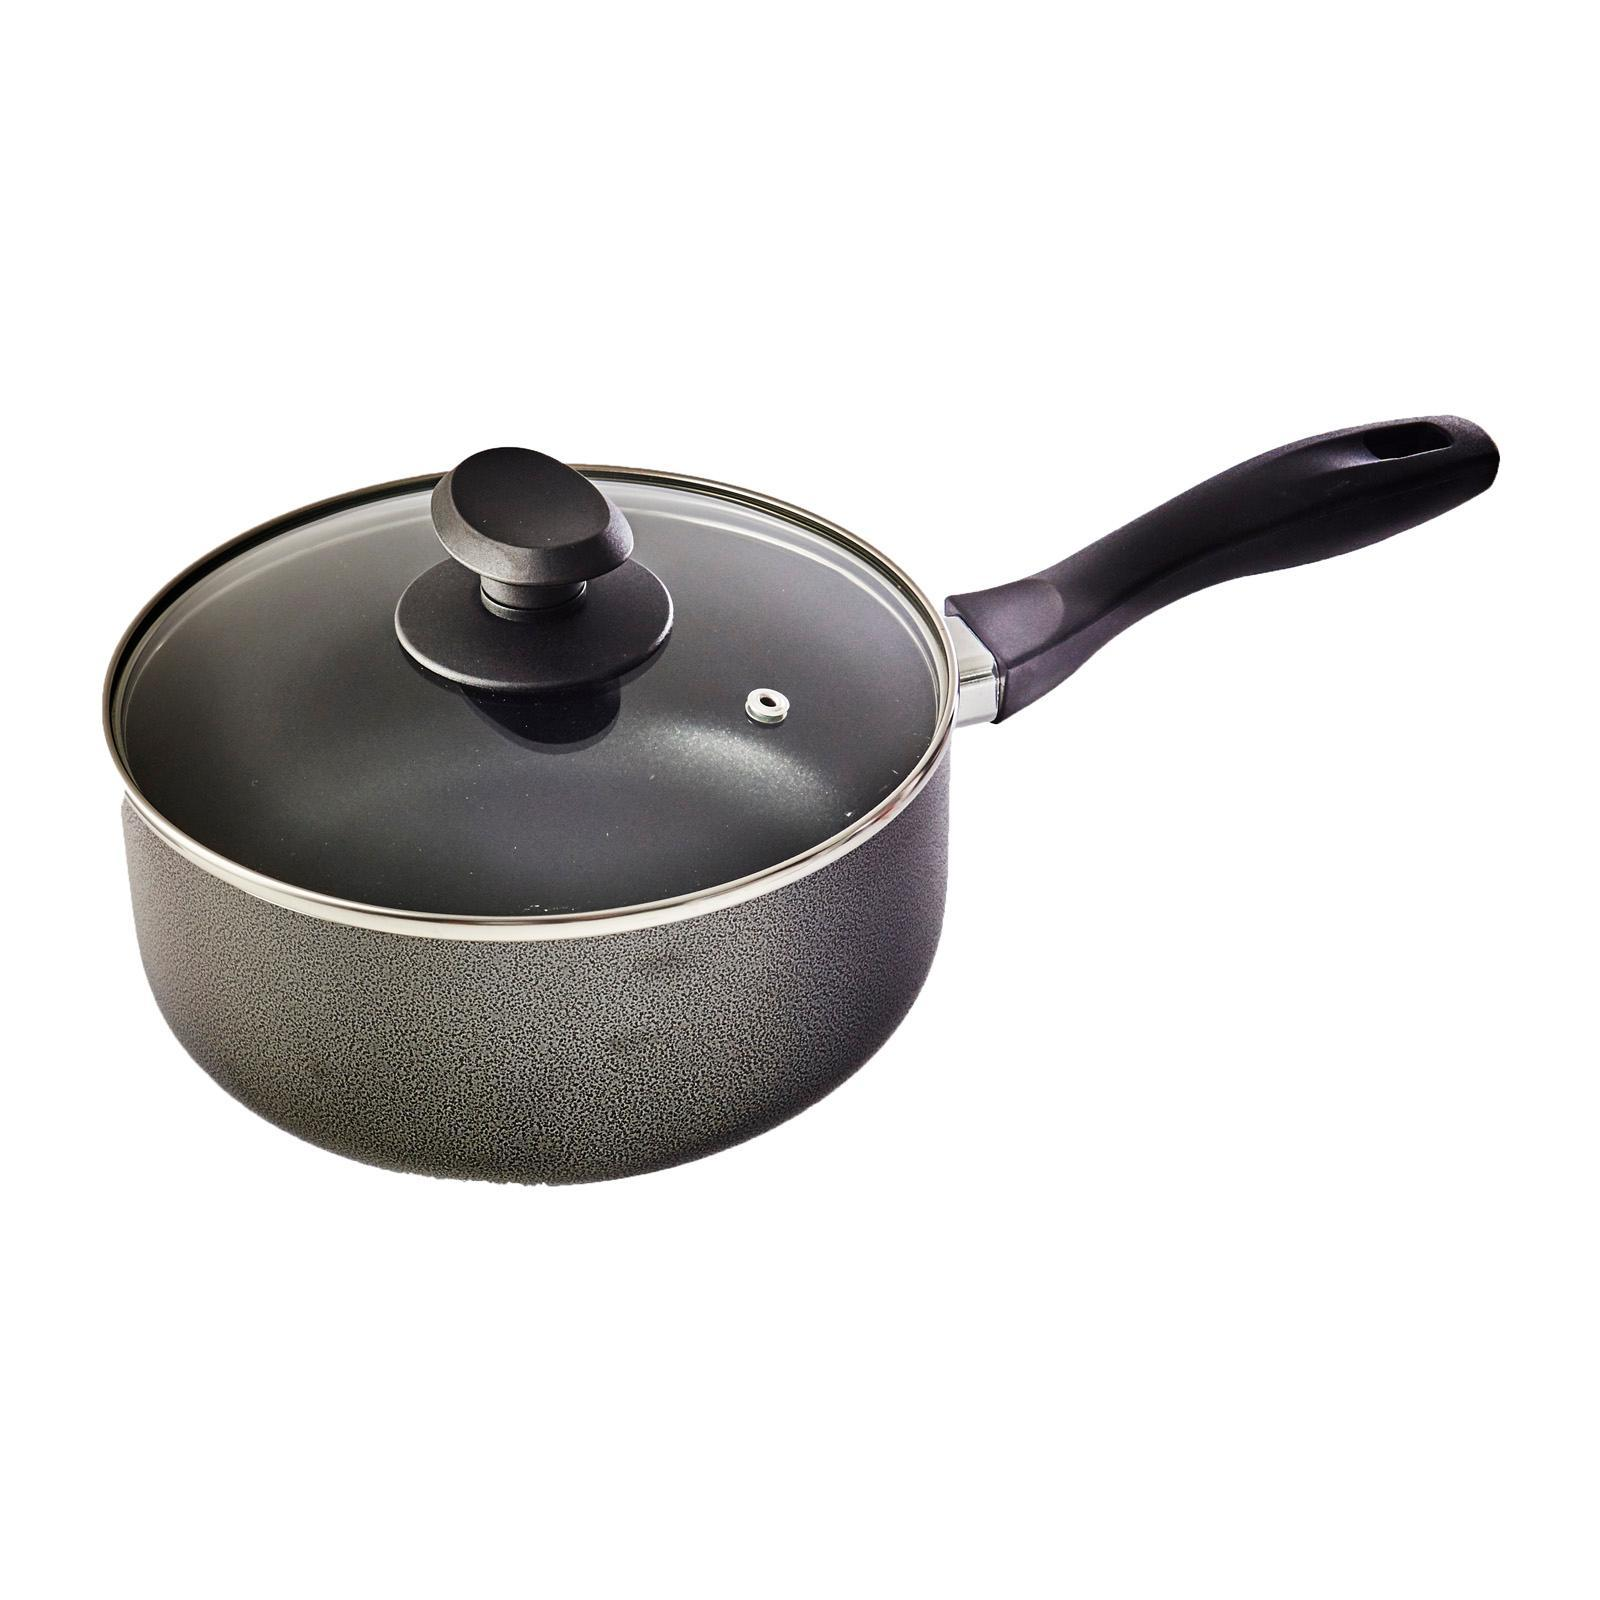 Wyking 20Cm Induction Non Stick Saucepan